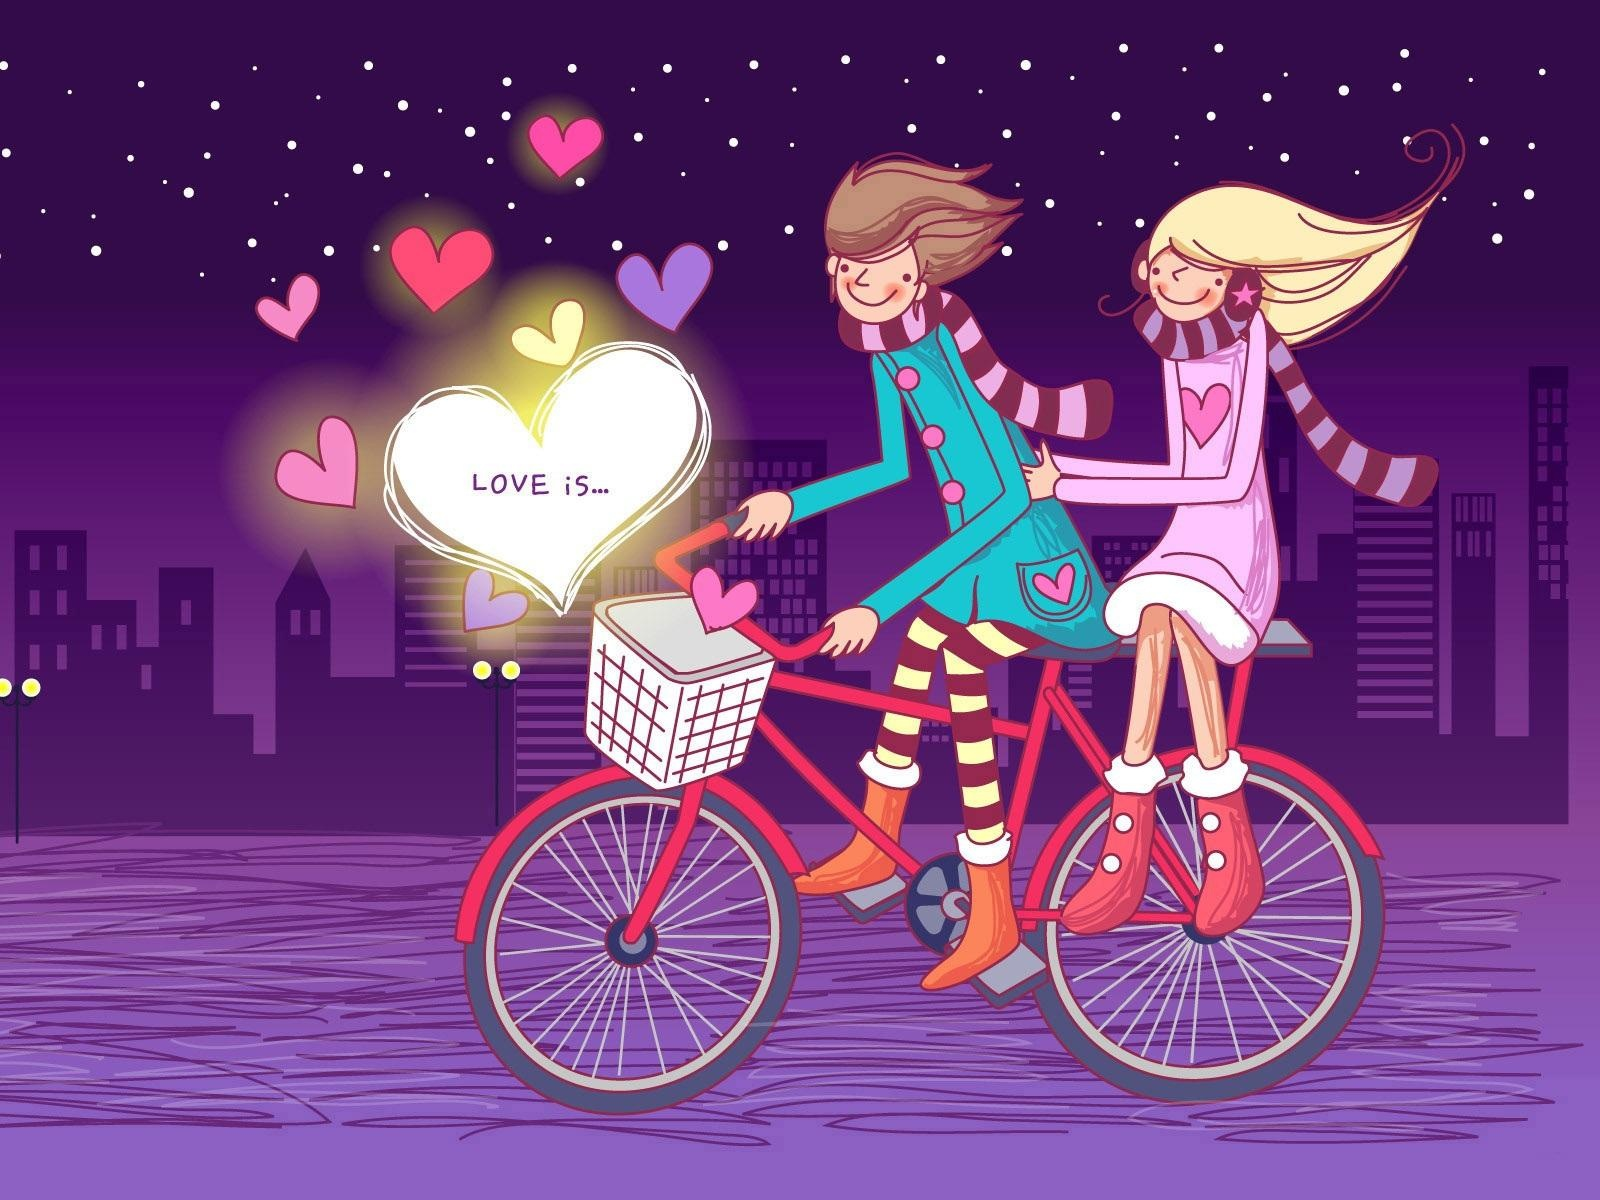 Hd Wallpaper Of cartoon Love couple : Top 150+ Beautiful cute Romantic Love couple HD Wallpaper